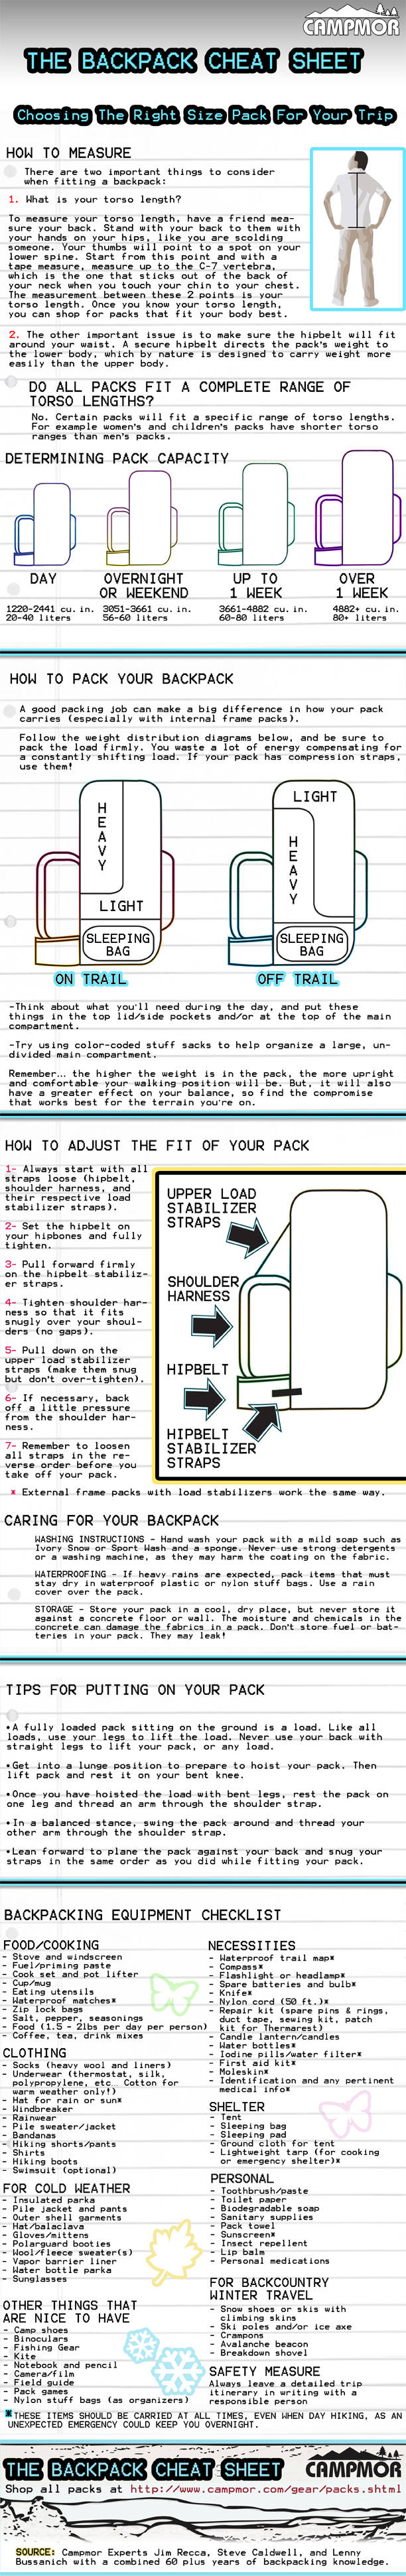 The Backpack Cheat Sheet | Campmor Outdoors